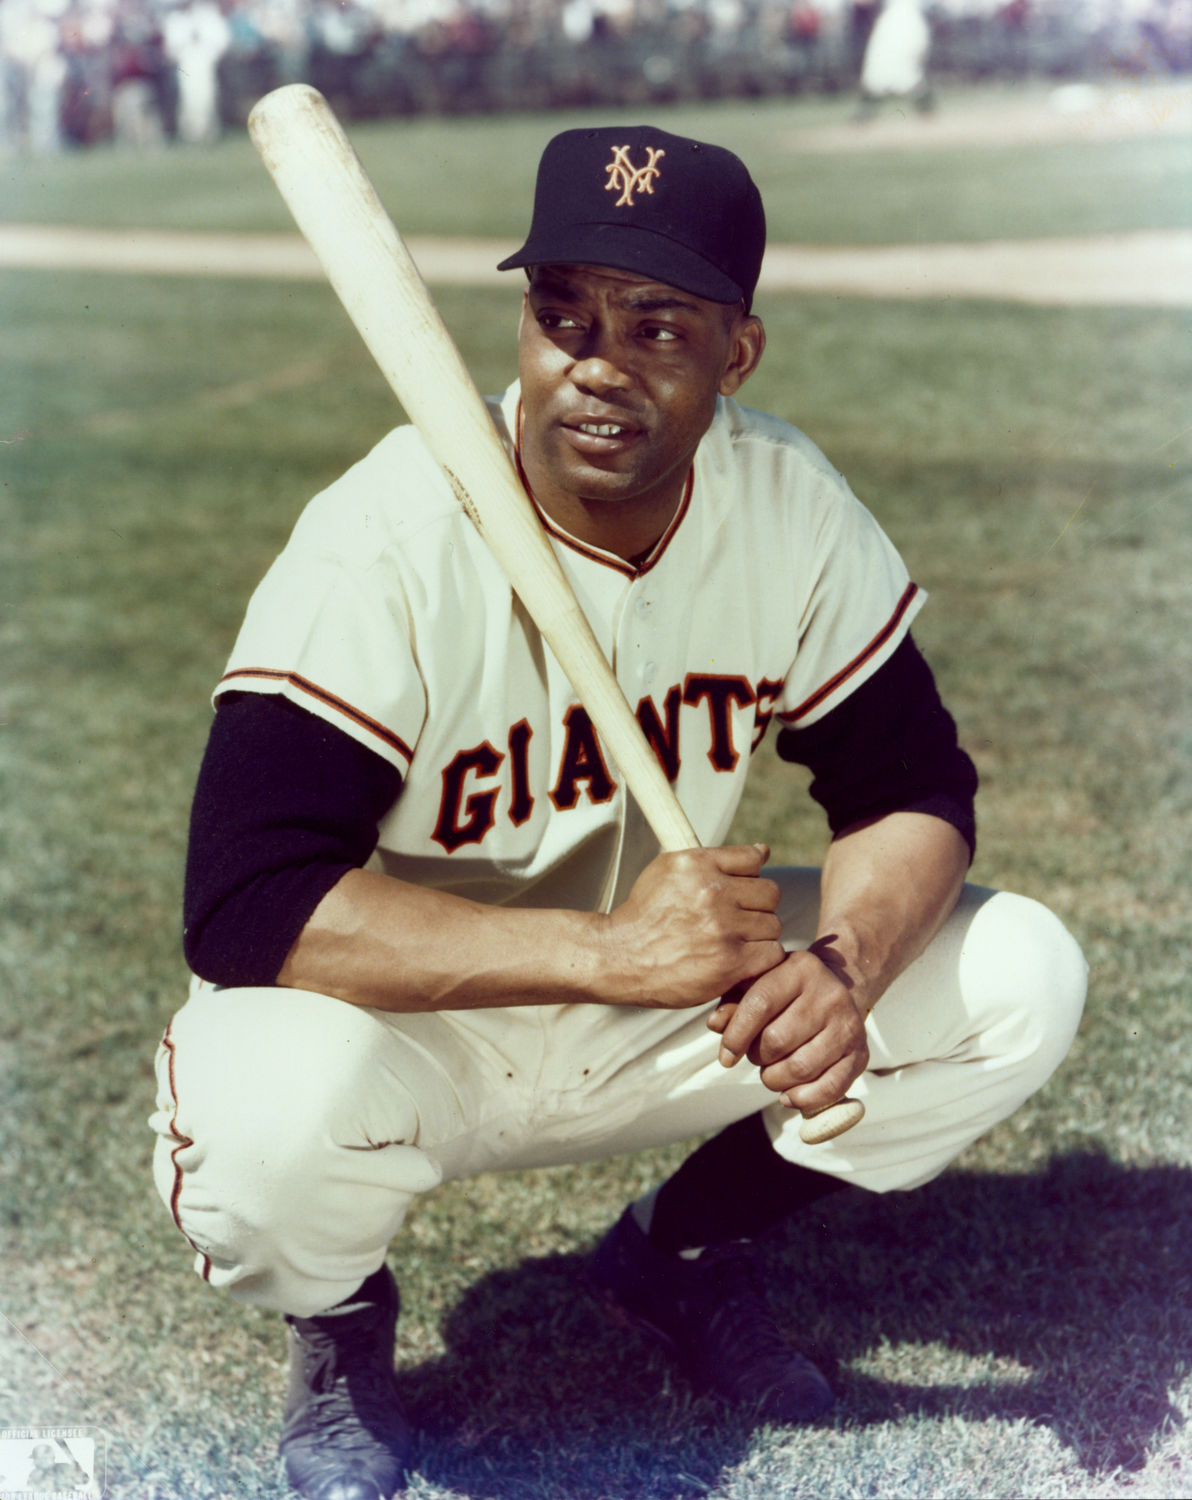 Monte Irvin of the New York Giants posed on the field with his bat 84a763db7